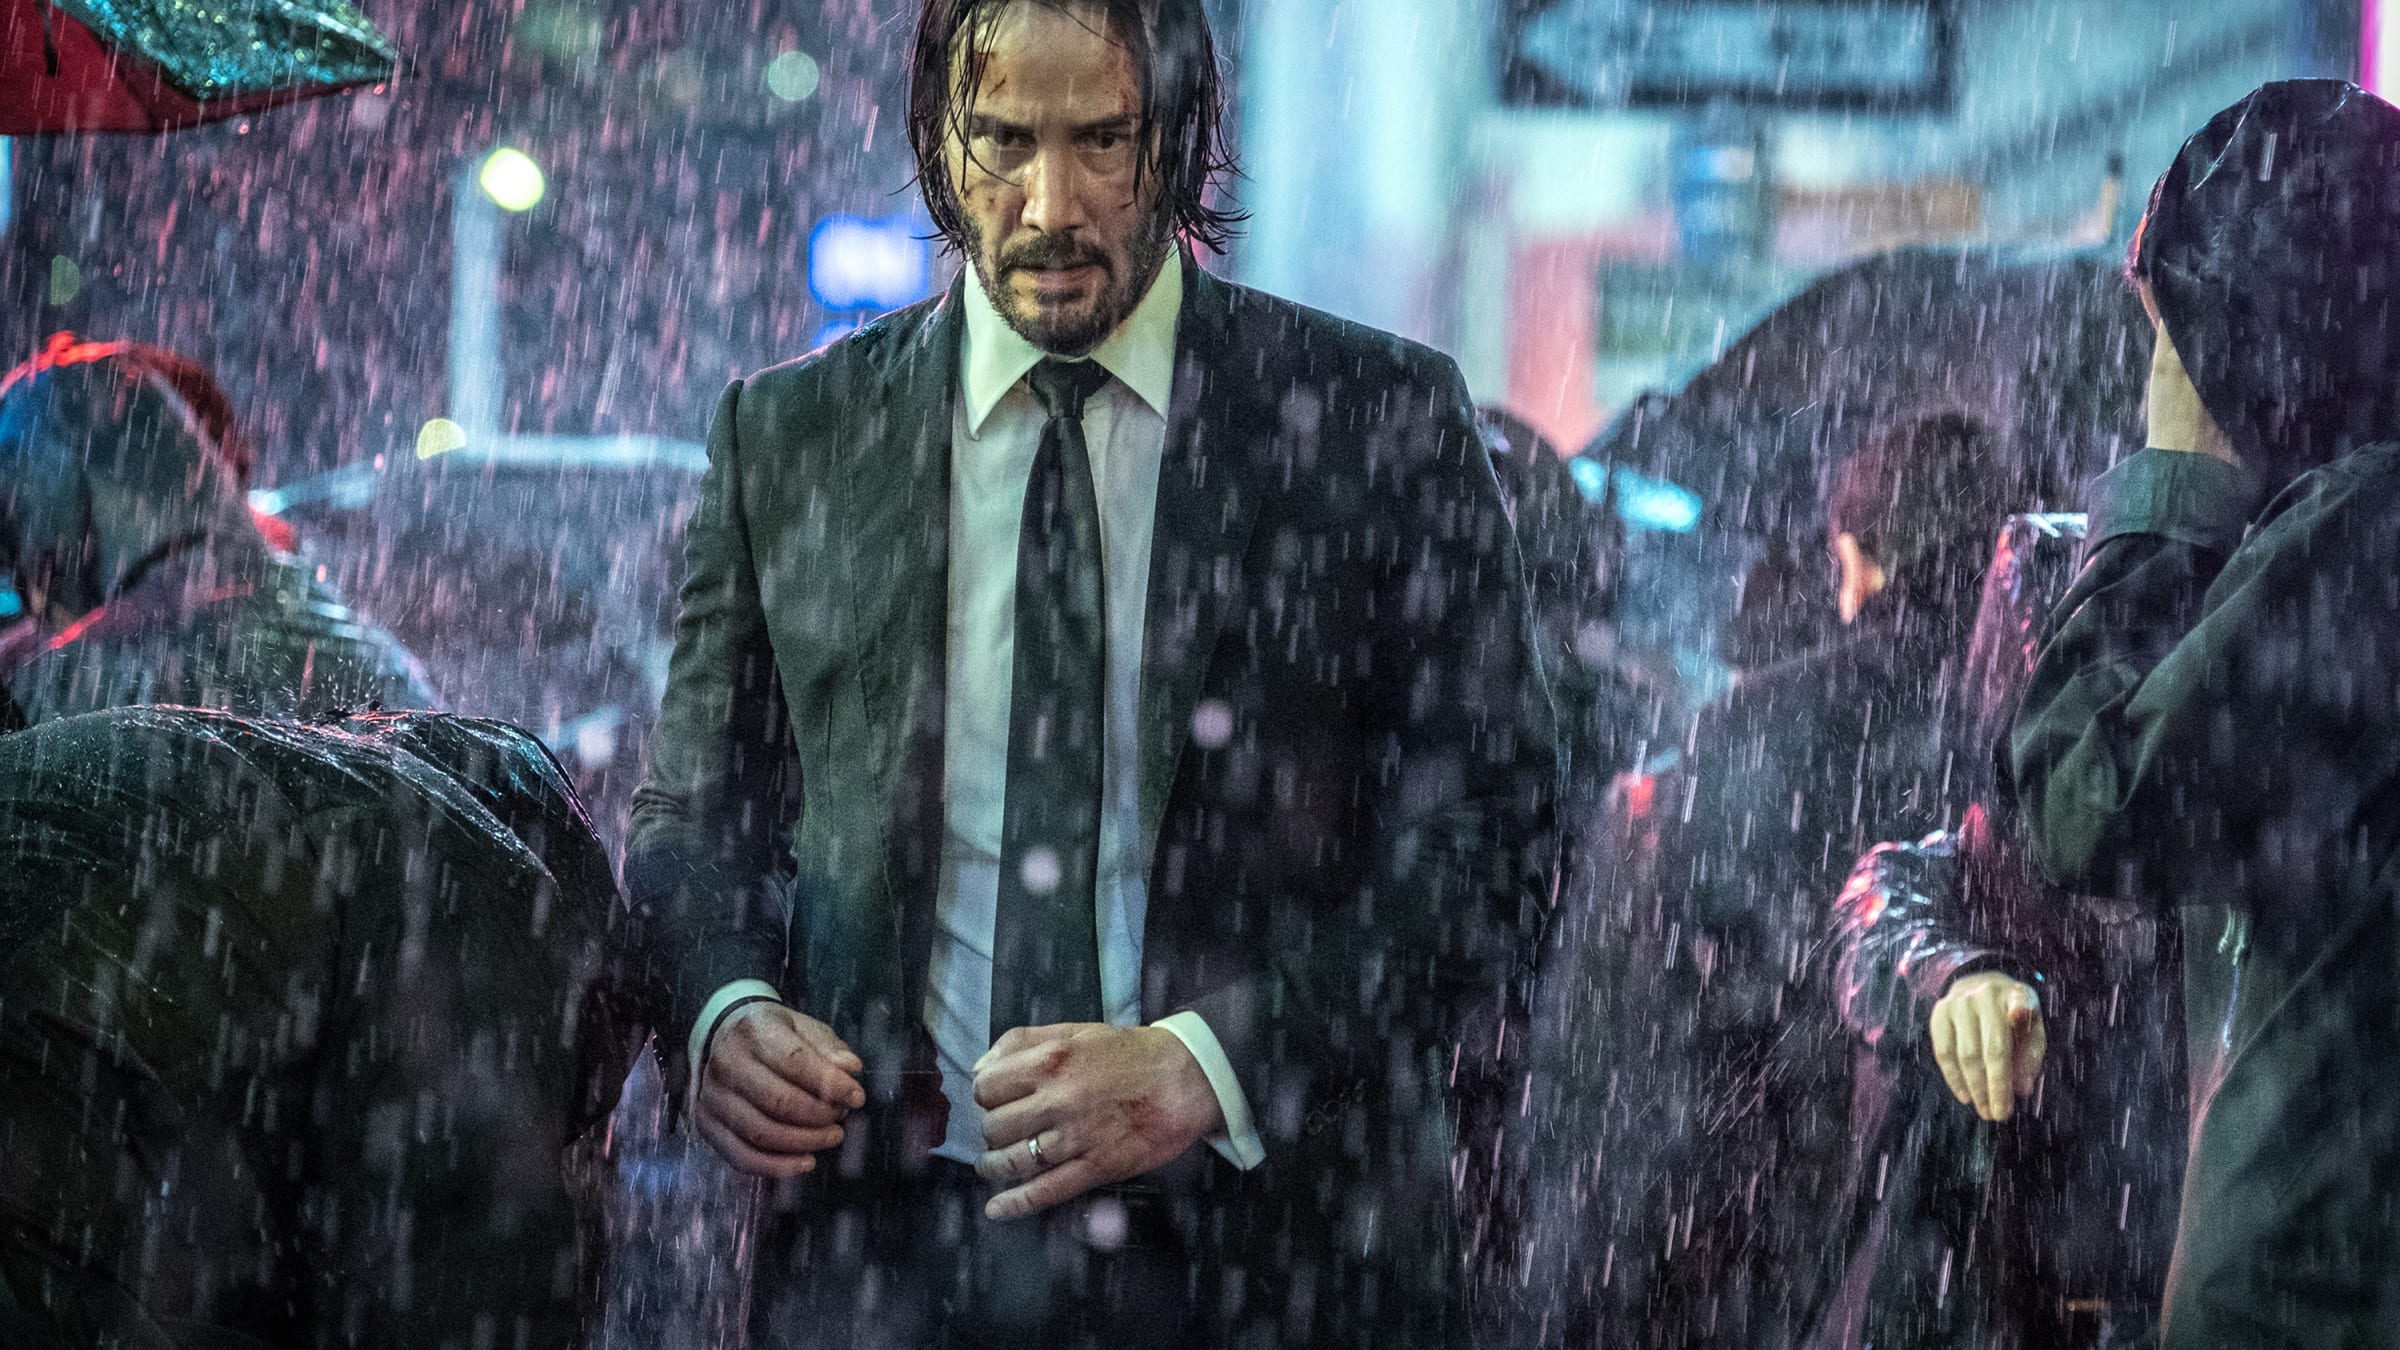 'John Wick: Chapter 3': Keanu Reeves Is the Coolest Action Star That's Ever Lived